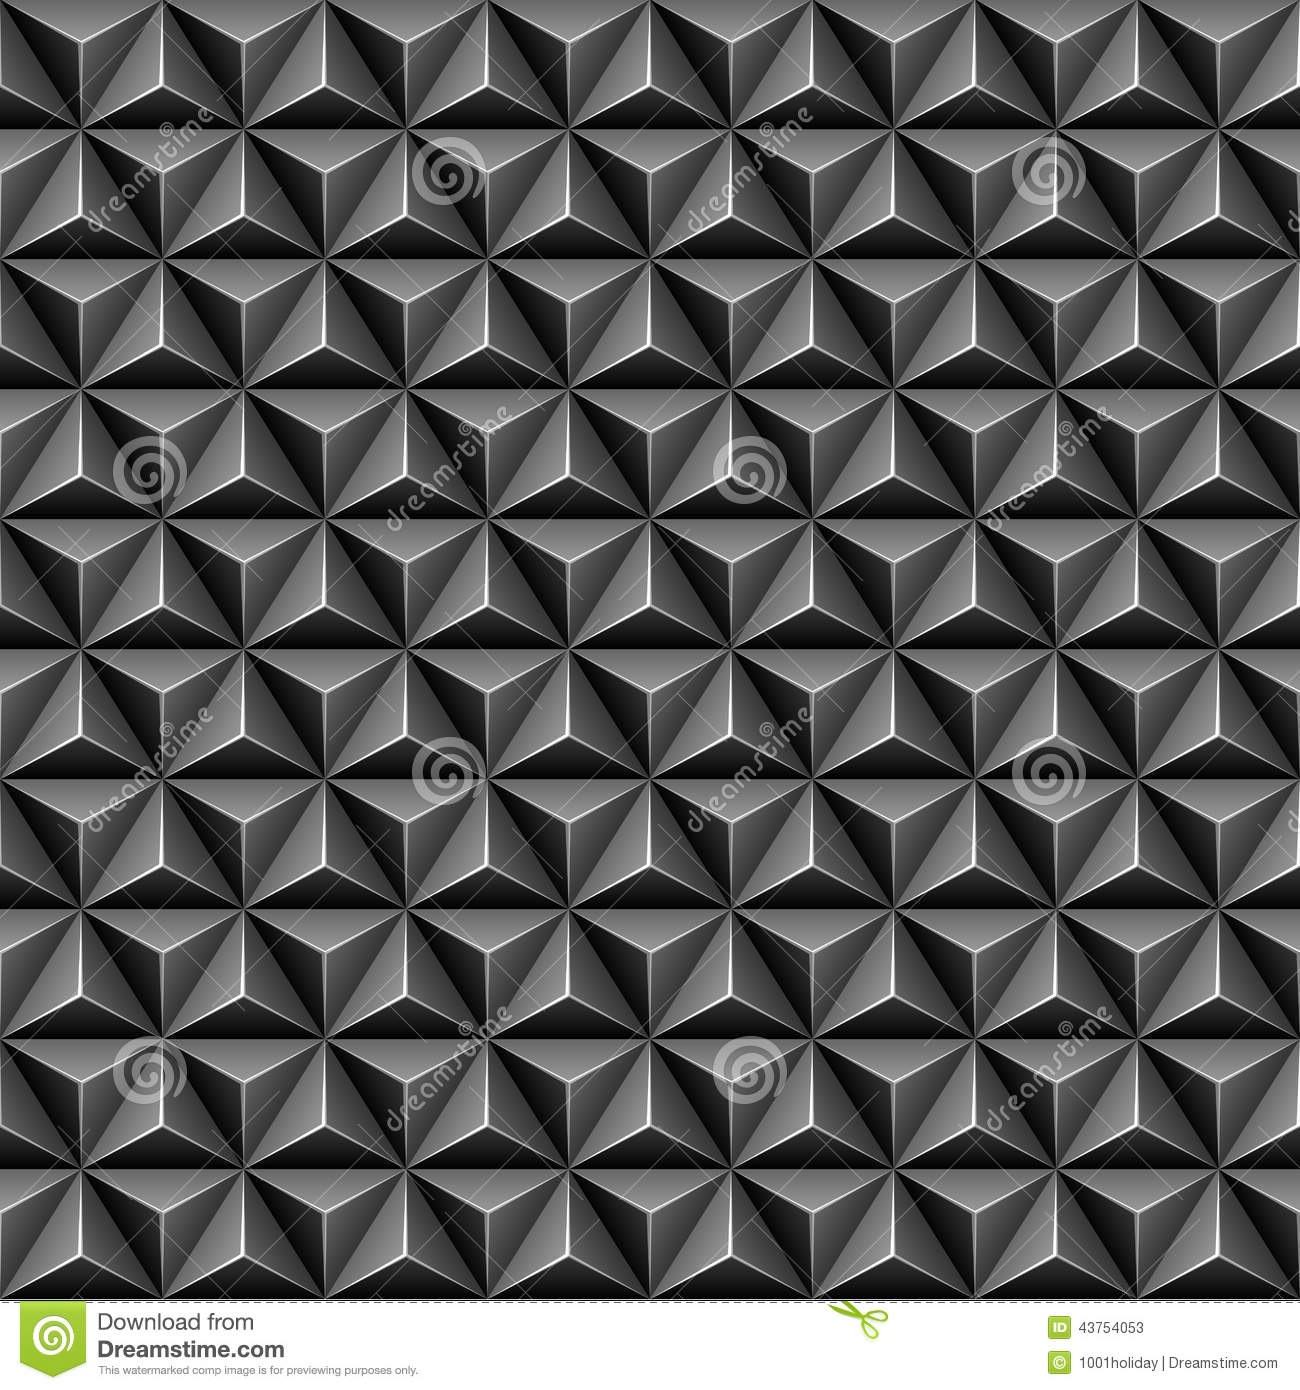 Black And White Diamond Wallpaper 3d Triangle Seamless Pattern Stock Vector Image 43754053